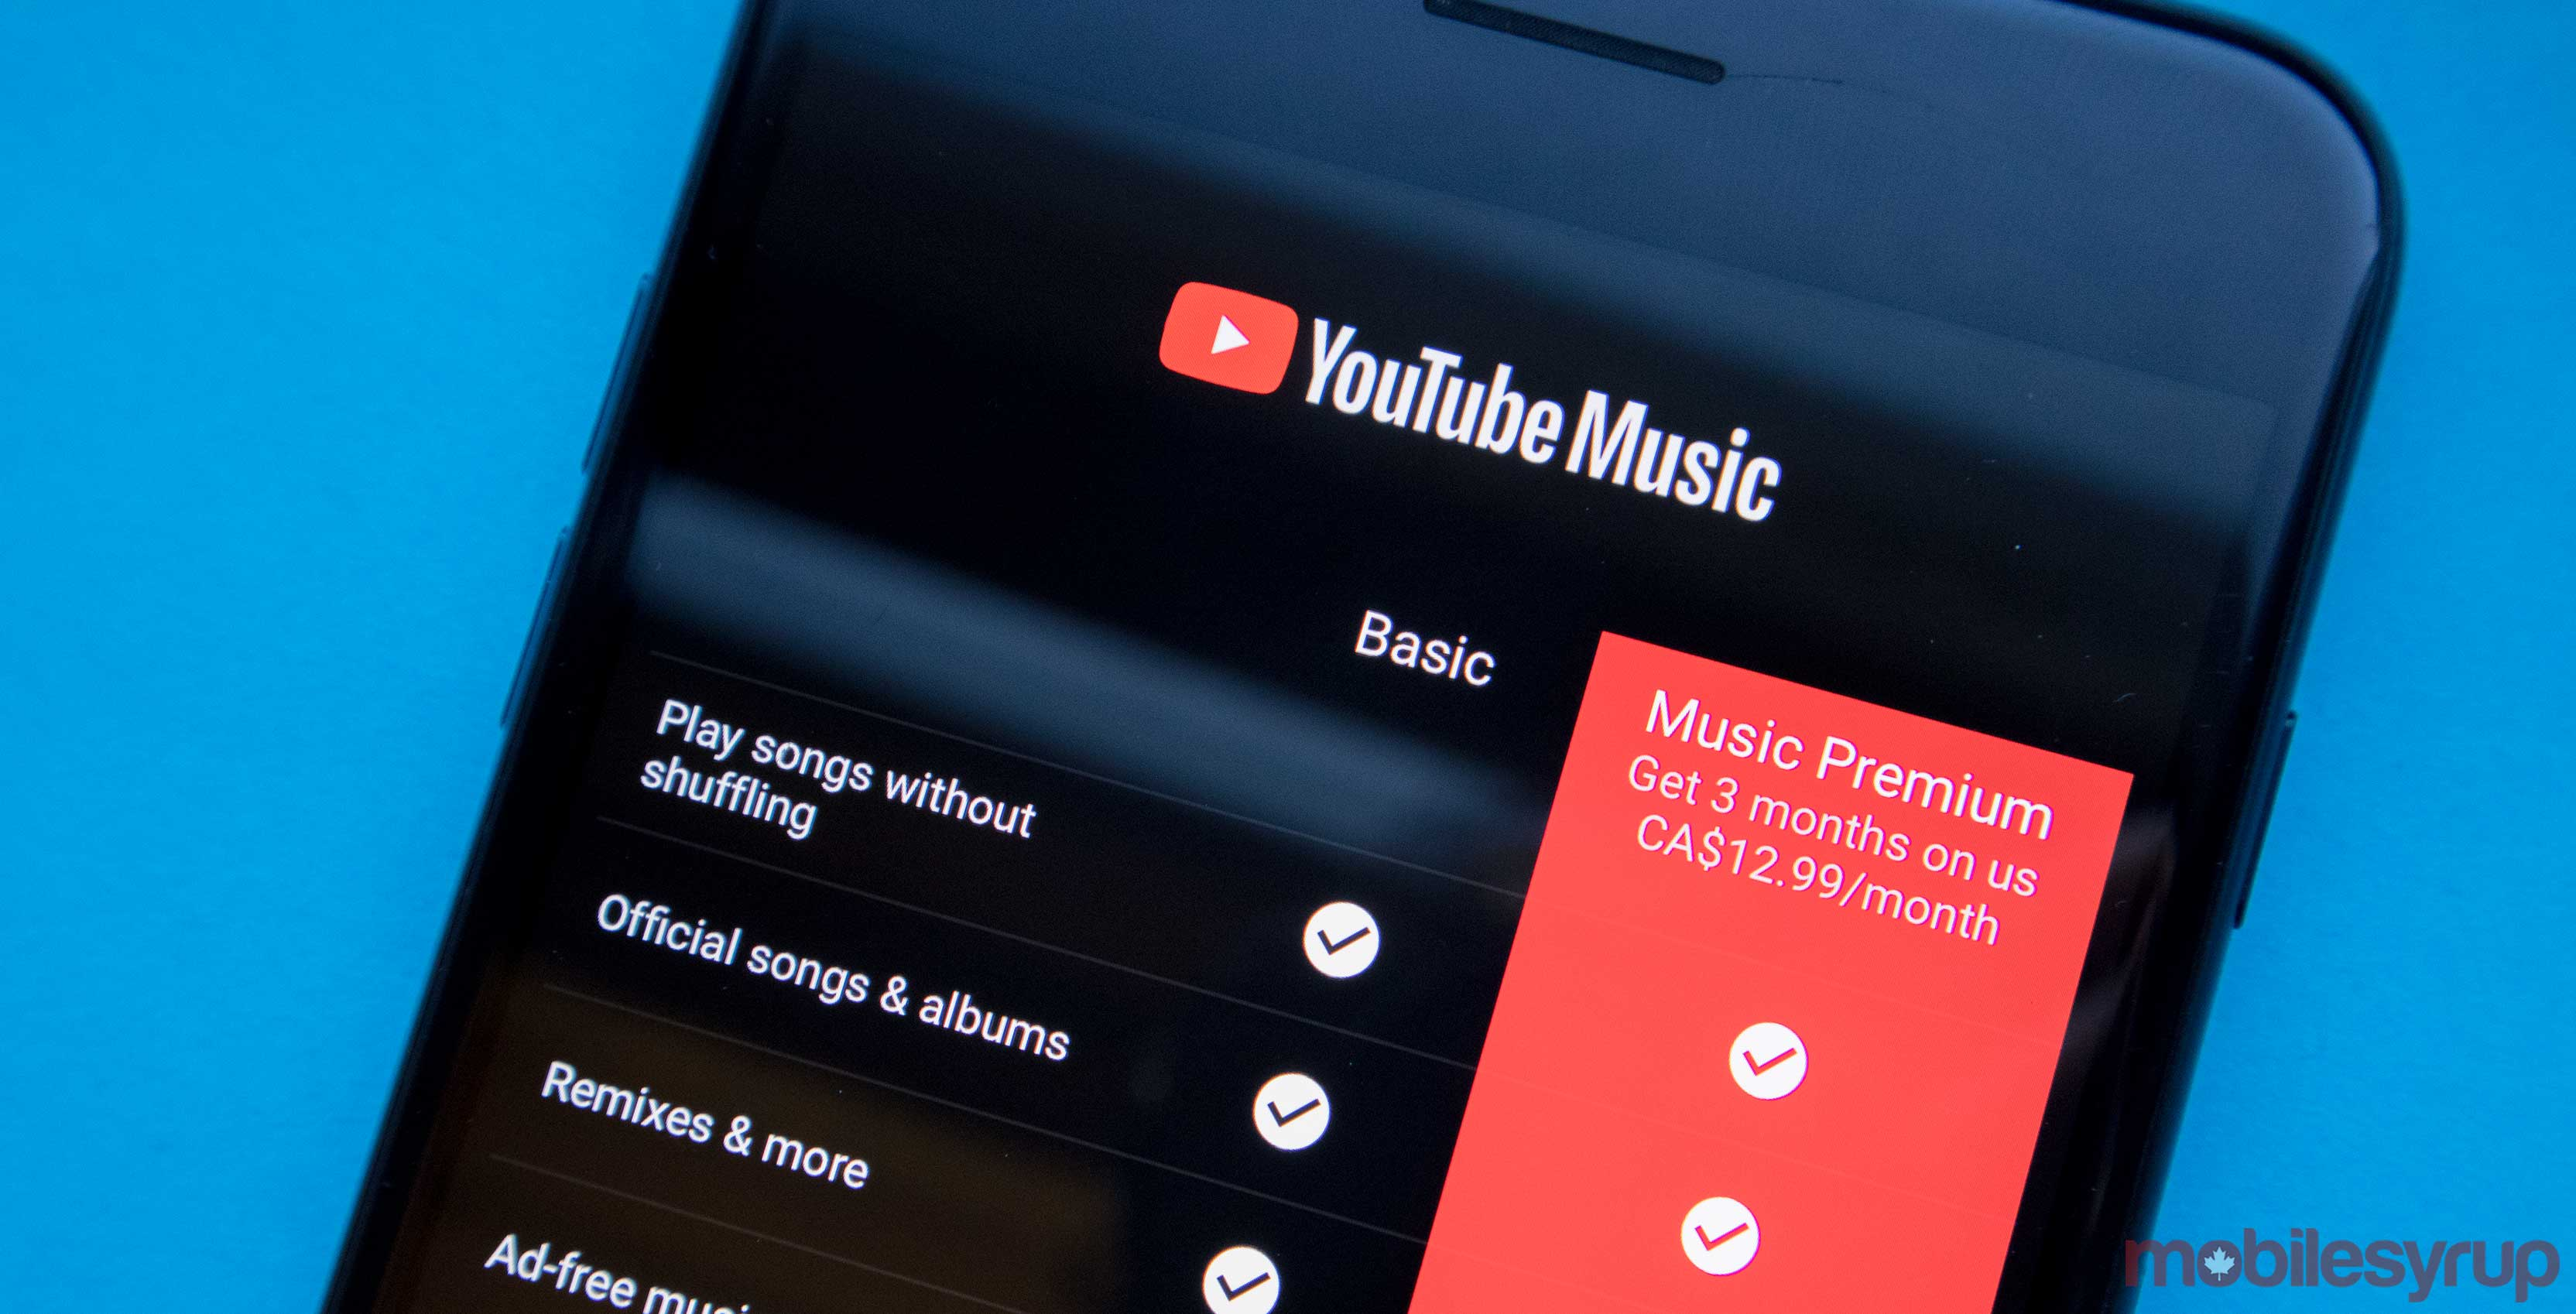 It S More Expensive To Subscribe To Youtube Music On Ios Than Android